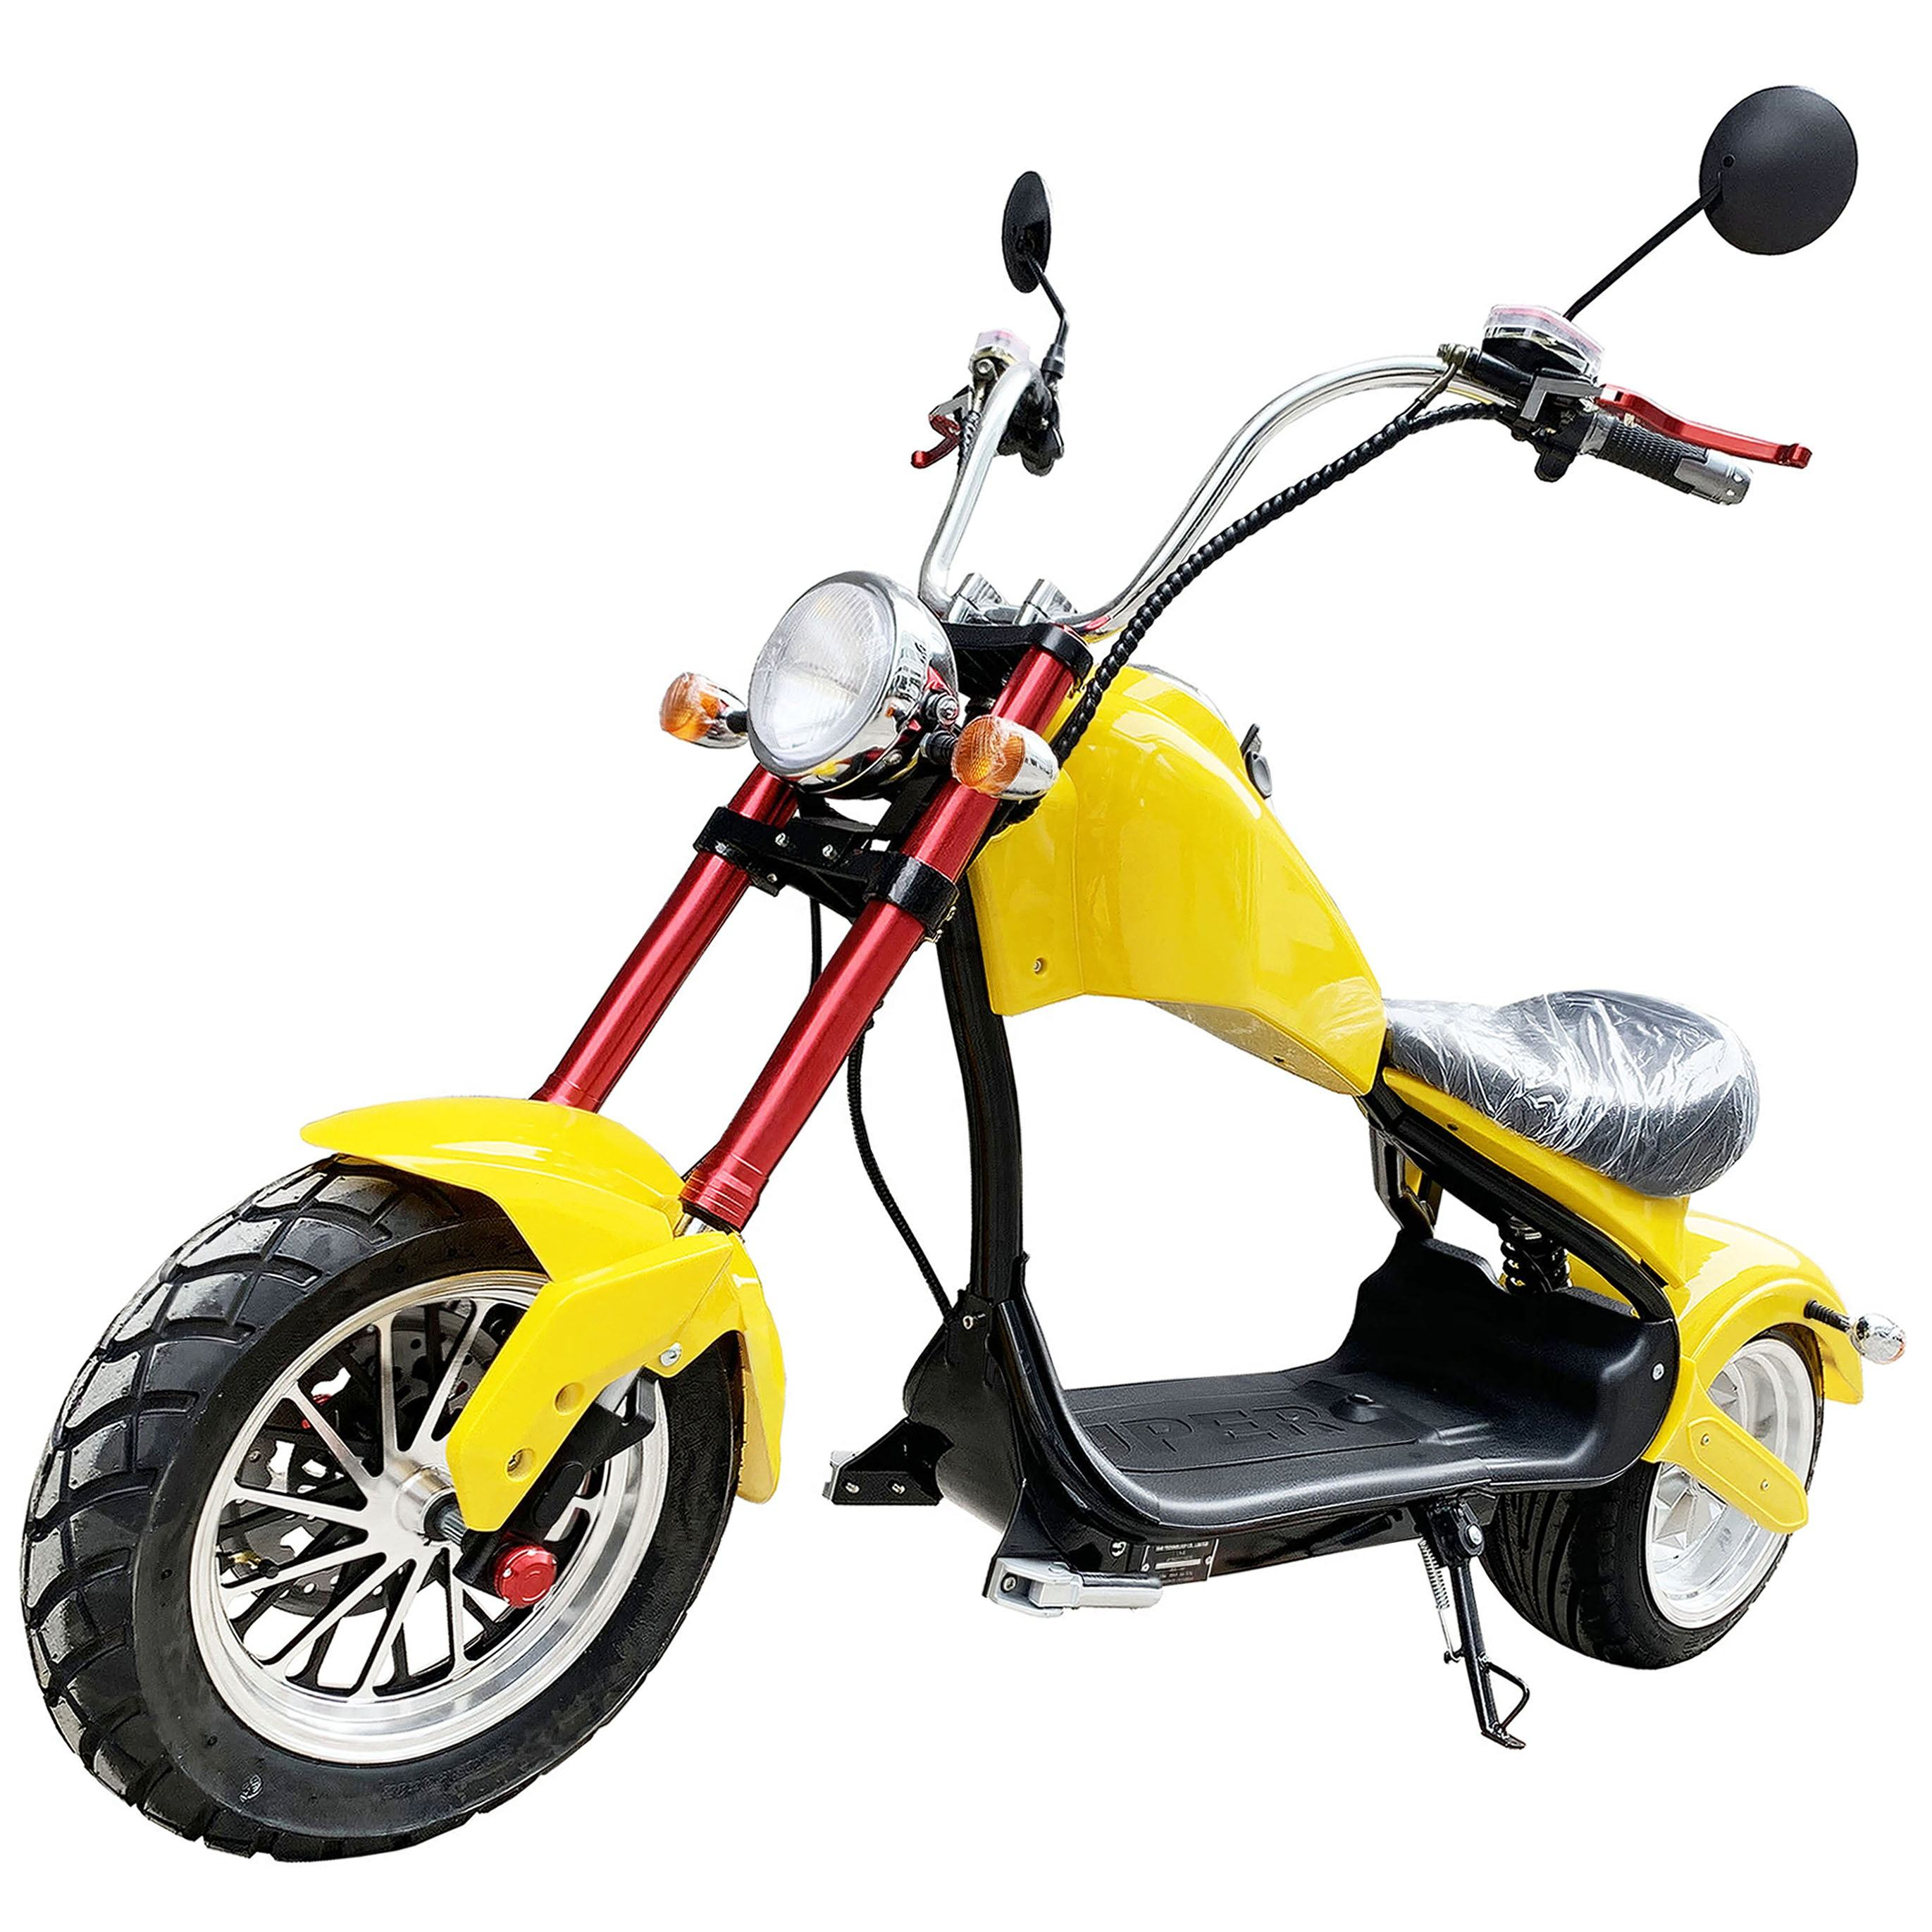 Europe dropshipping European Warehouse CE E MARK Electric Motorcycles 2020 Chopper Electric Scooter 2000W Powerful Motorcycle